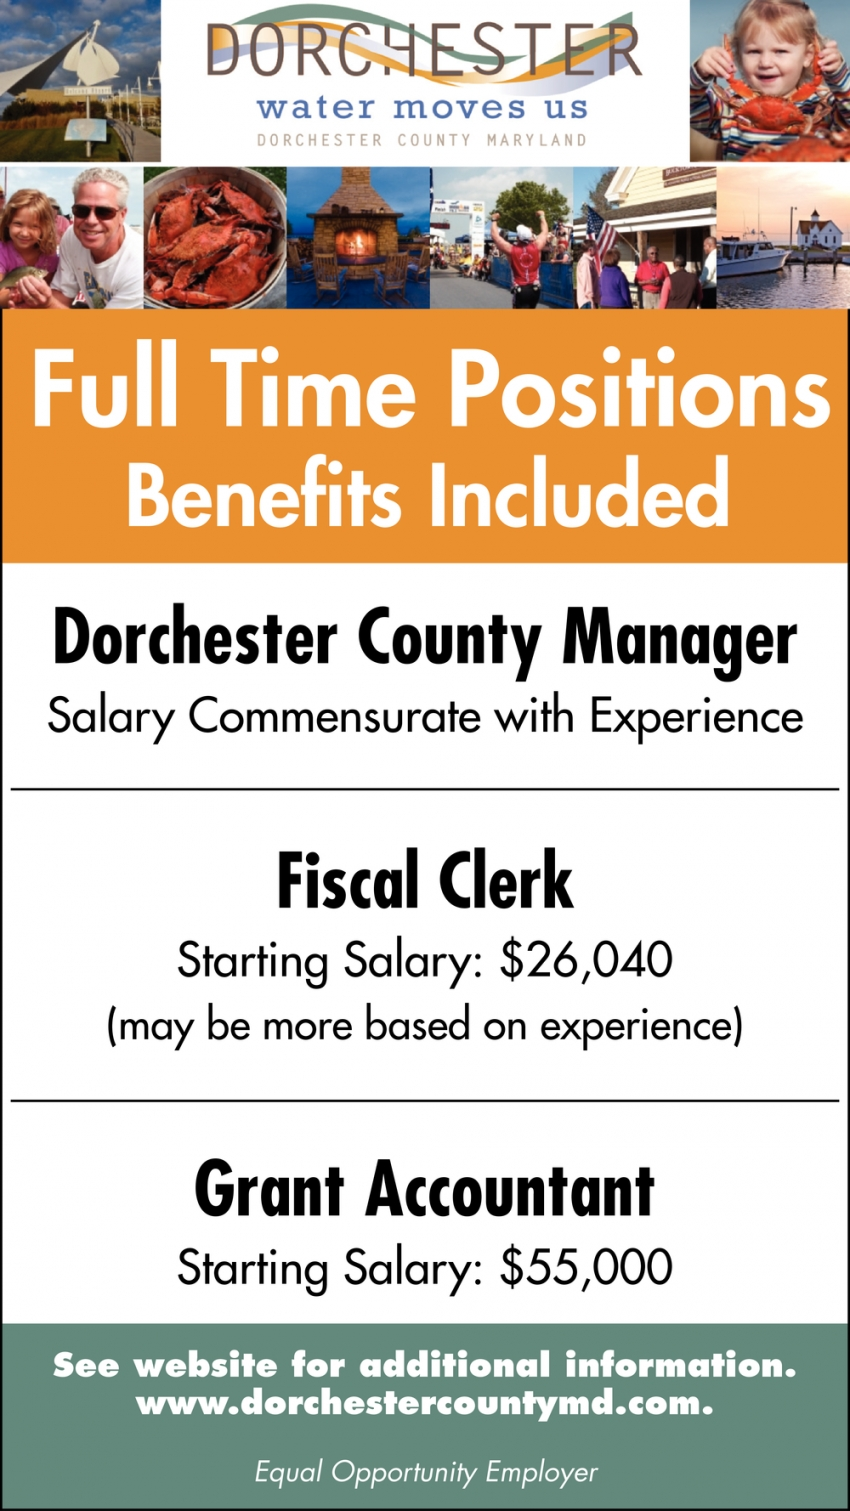 Fiscal Clerk - Grant Accountant - Dorchester County Manager